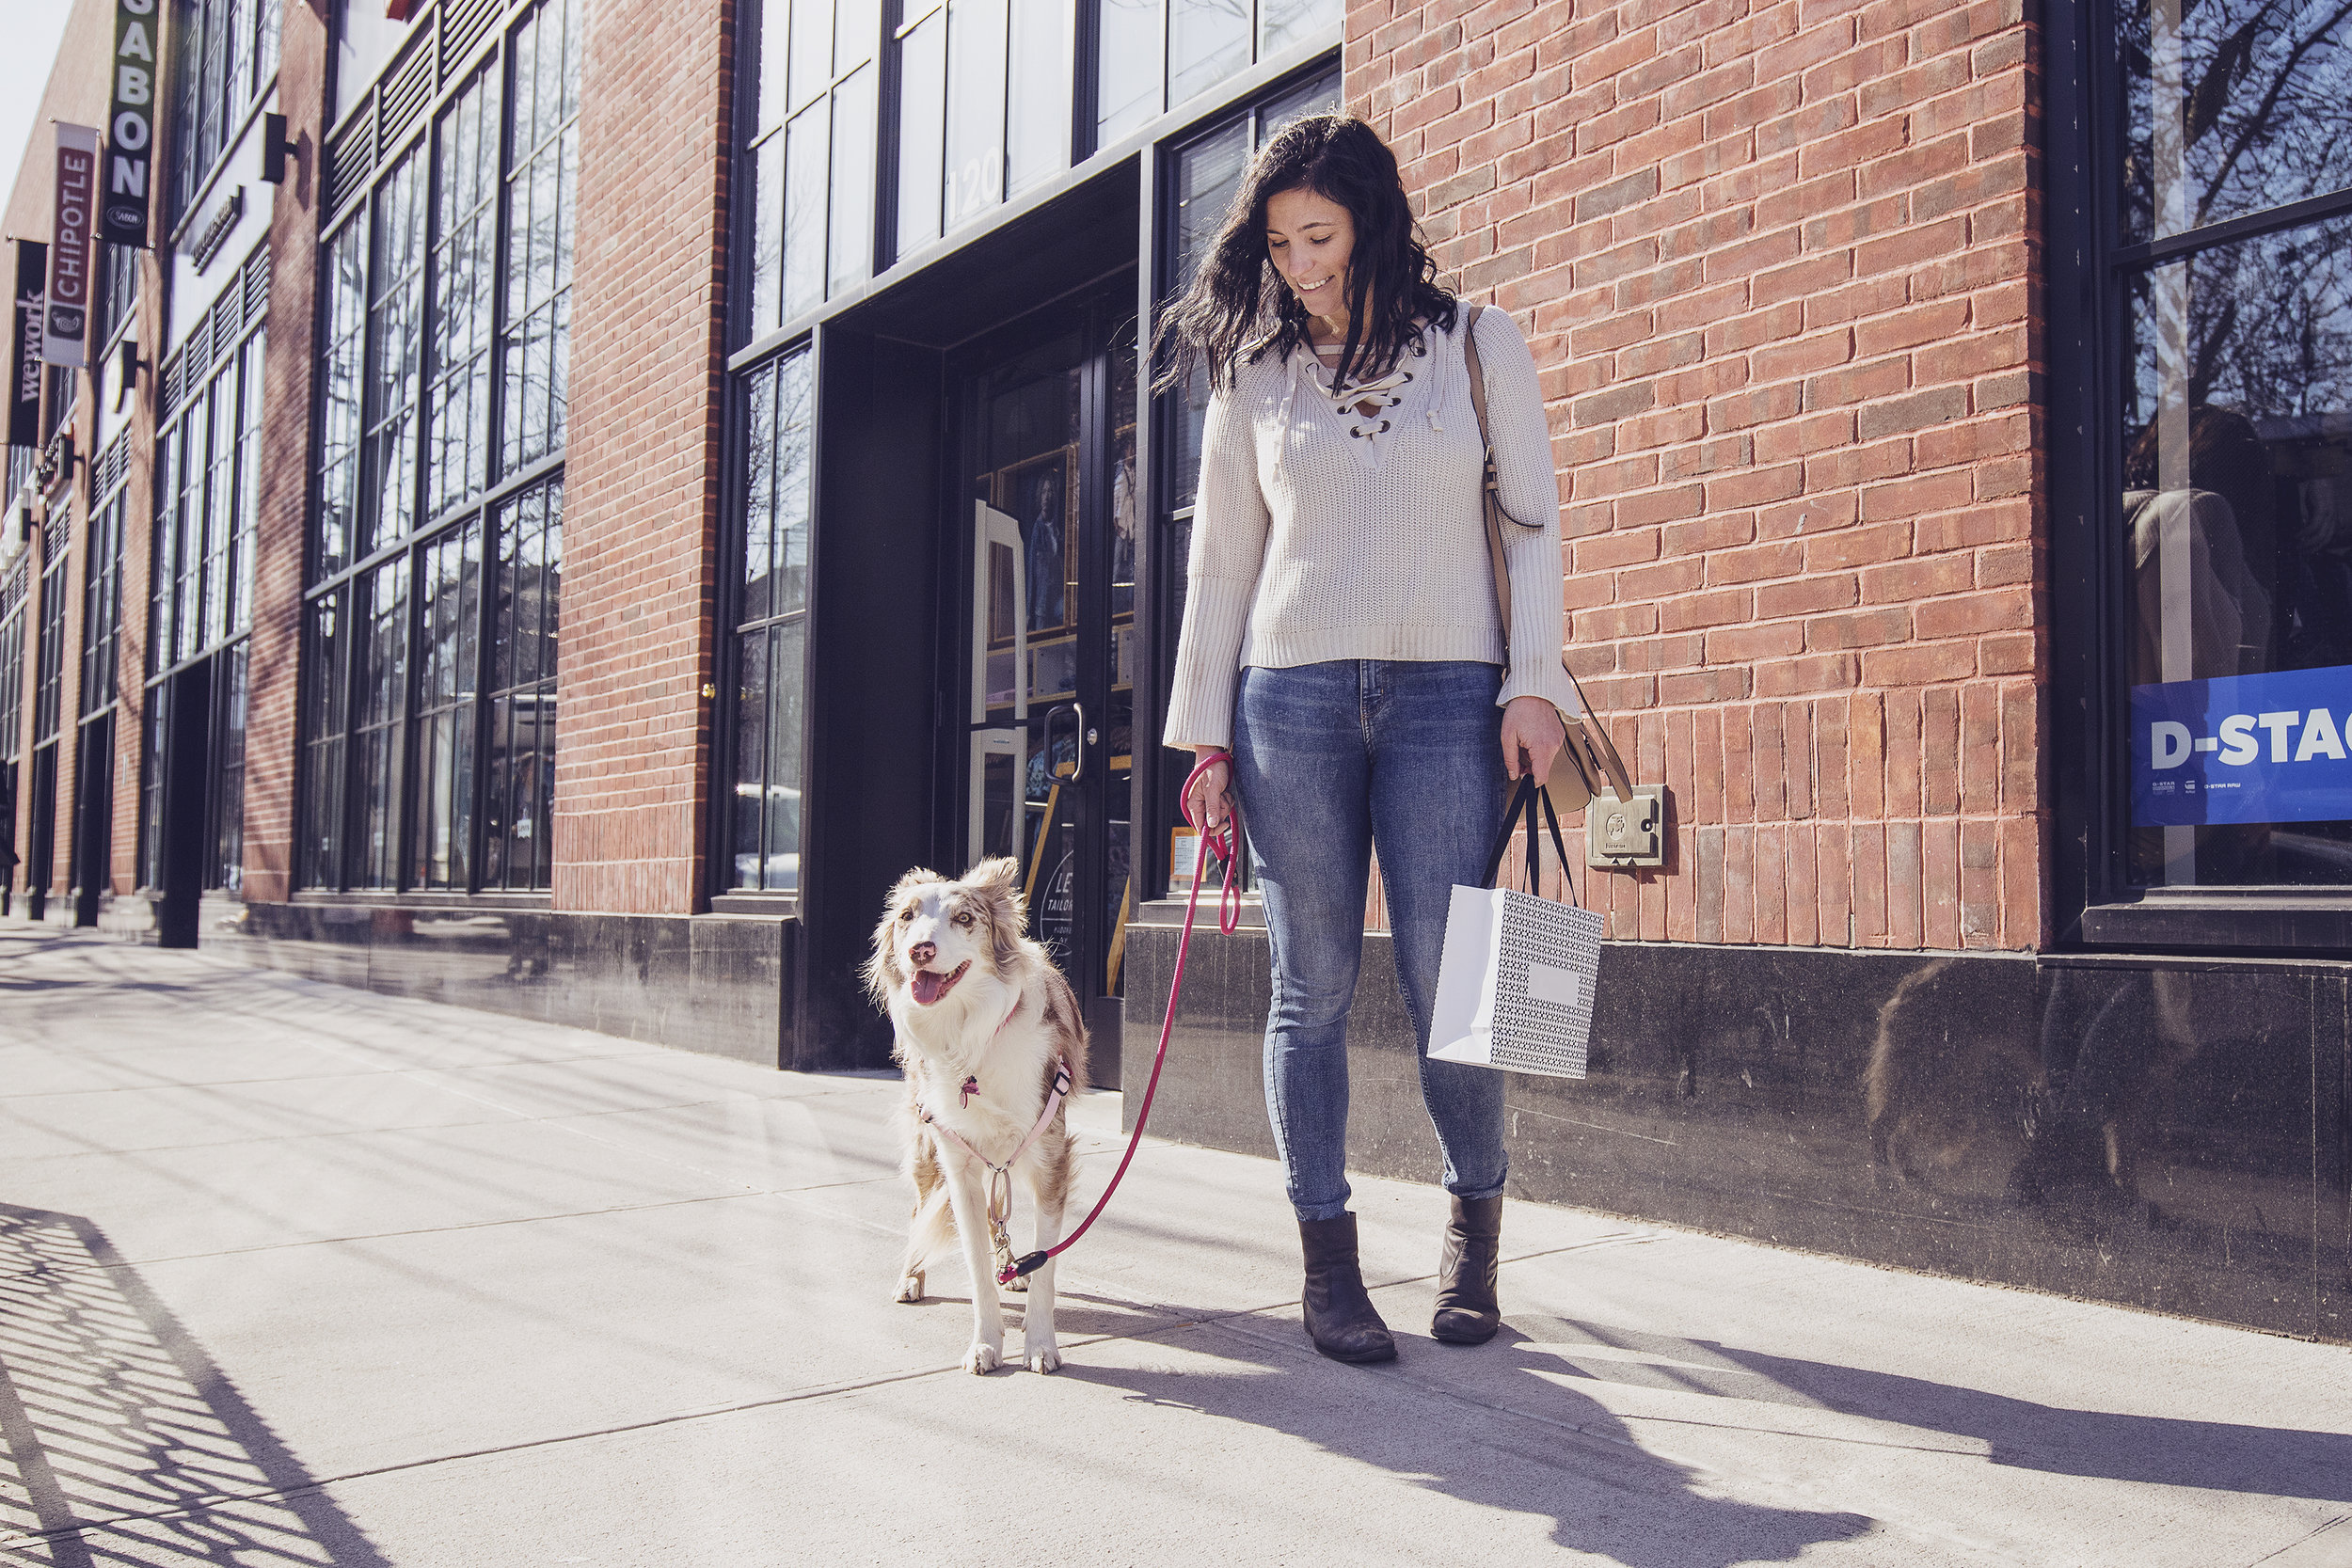 45 MILLION DOGS ACCOMPANY THEIR GUARDIANS ON ERRANDS EVERY WEEK - EACH DOG WALKING PAST YOUR BUSINESS COULD BE A LOST SALE